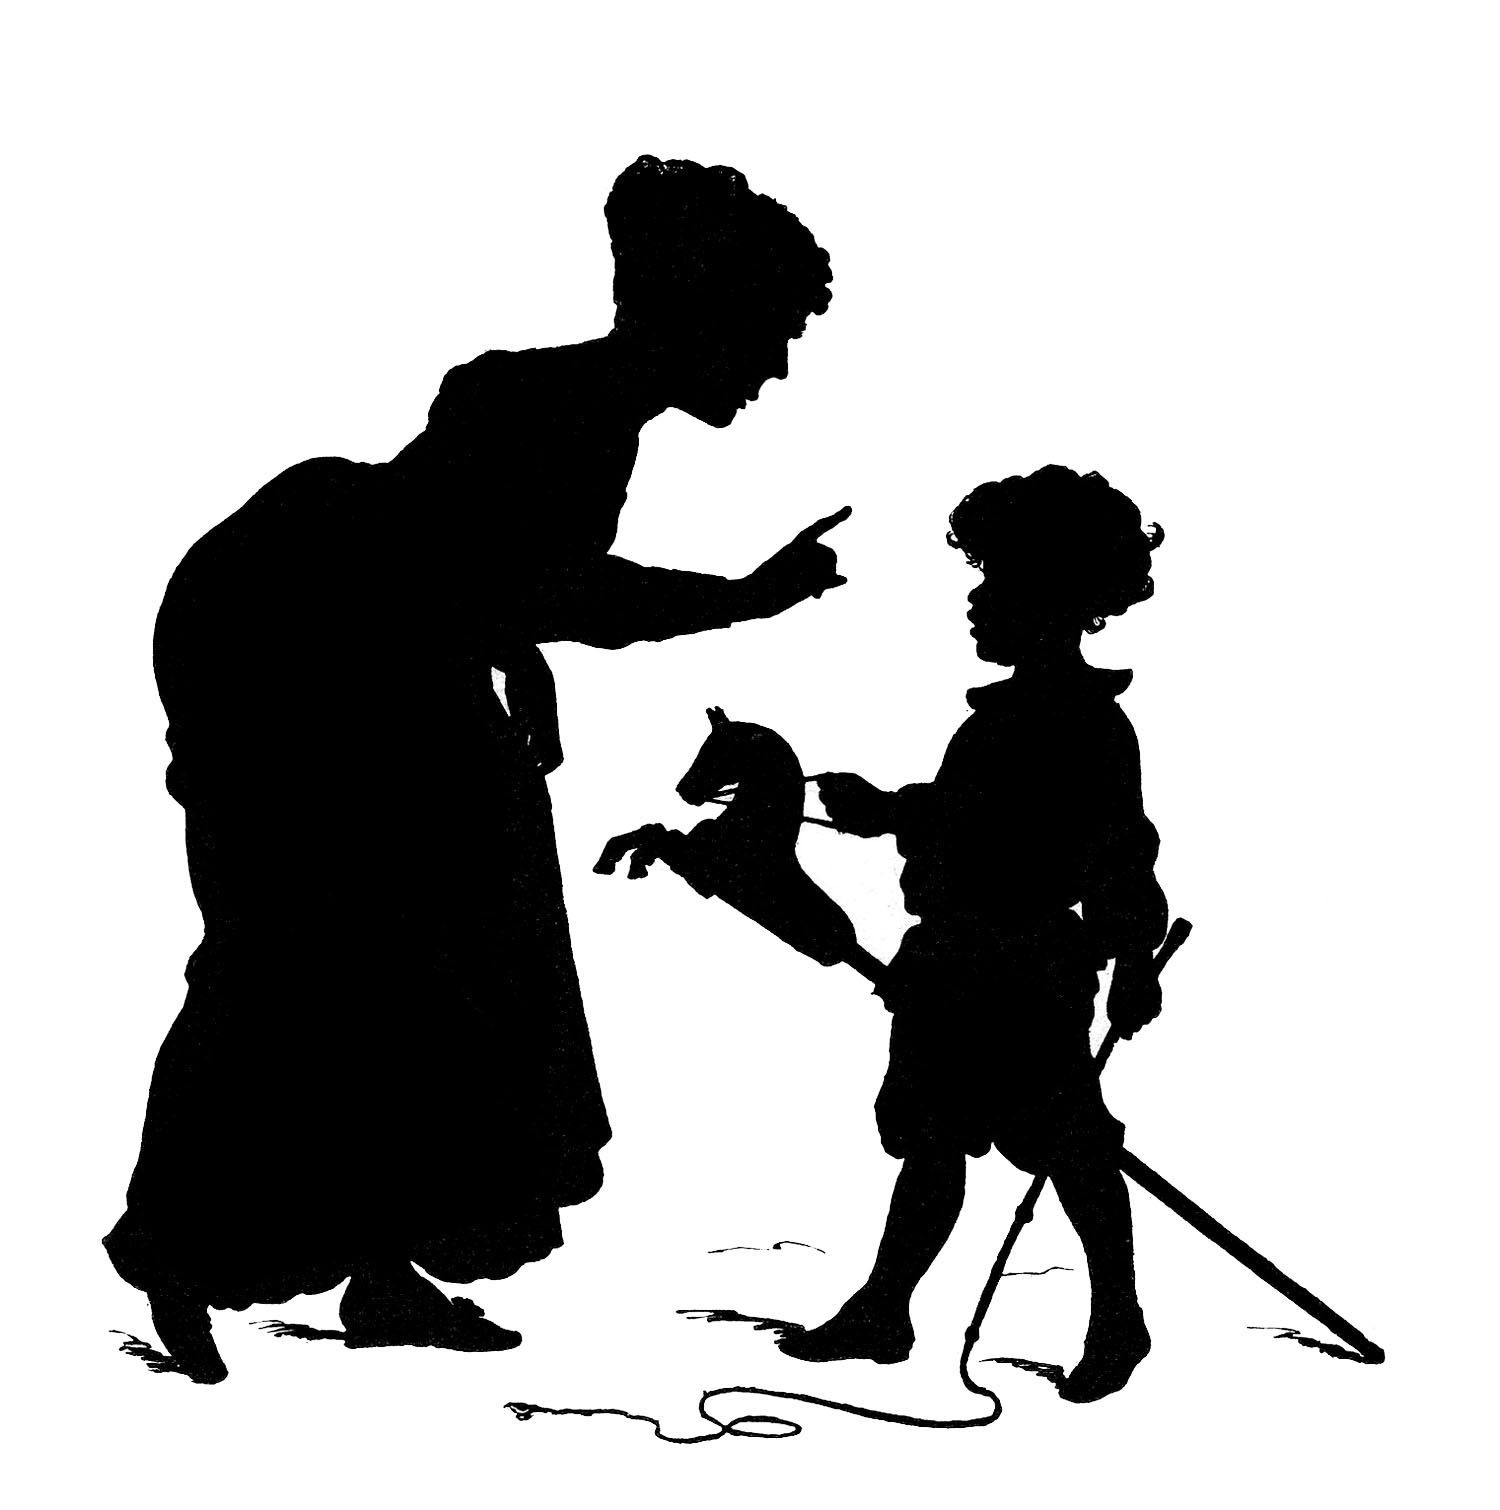 Baby and mother silhouette clipart black and white vector royalty free stock 9 Mother and Child Illustrations! - The Graphics Fairy vector royalty free stock